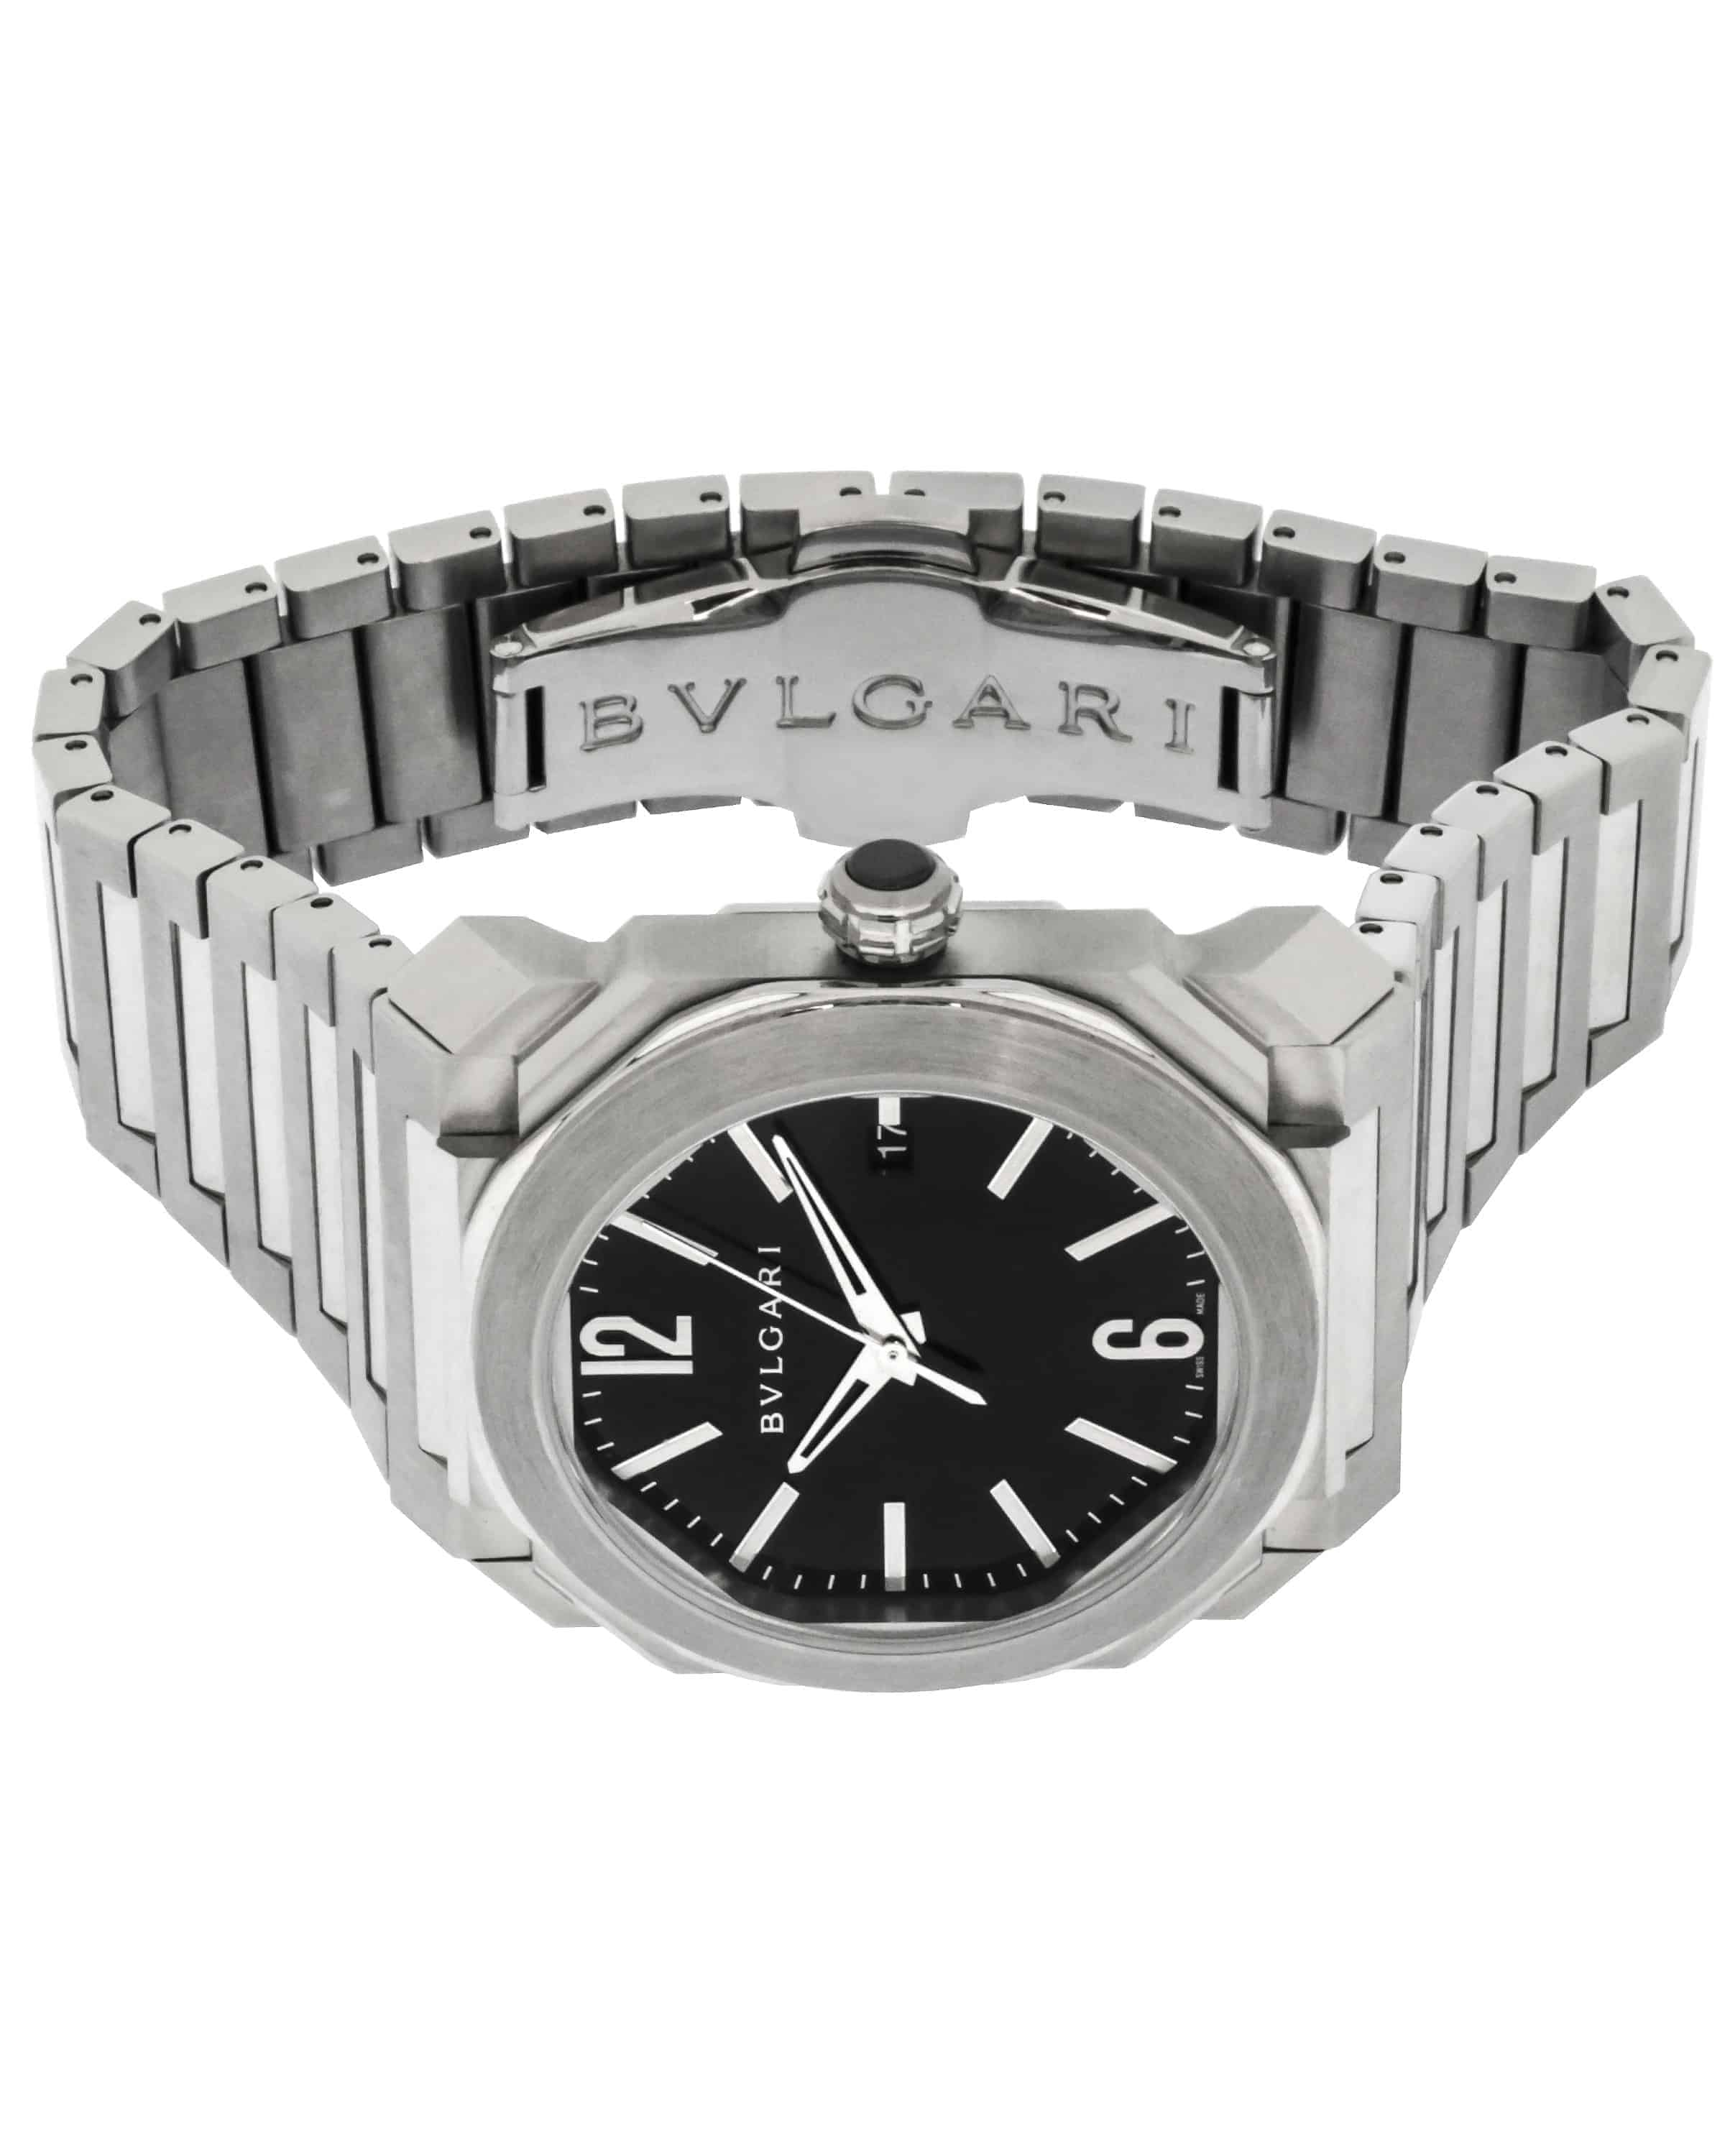 Bvlgari Octo 38mm Automatic Men's Watch BGO38BSSD